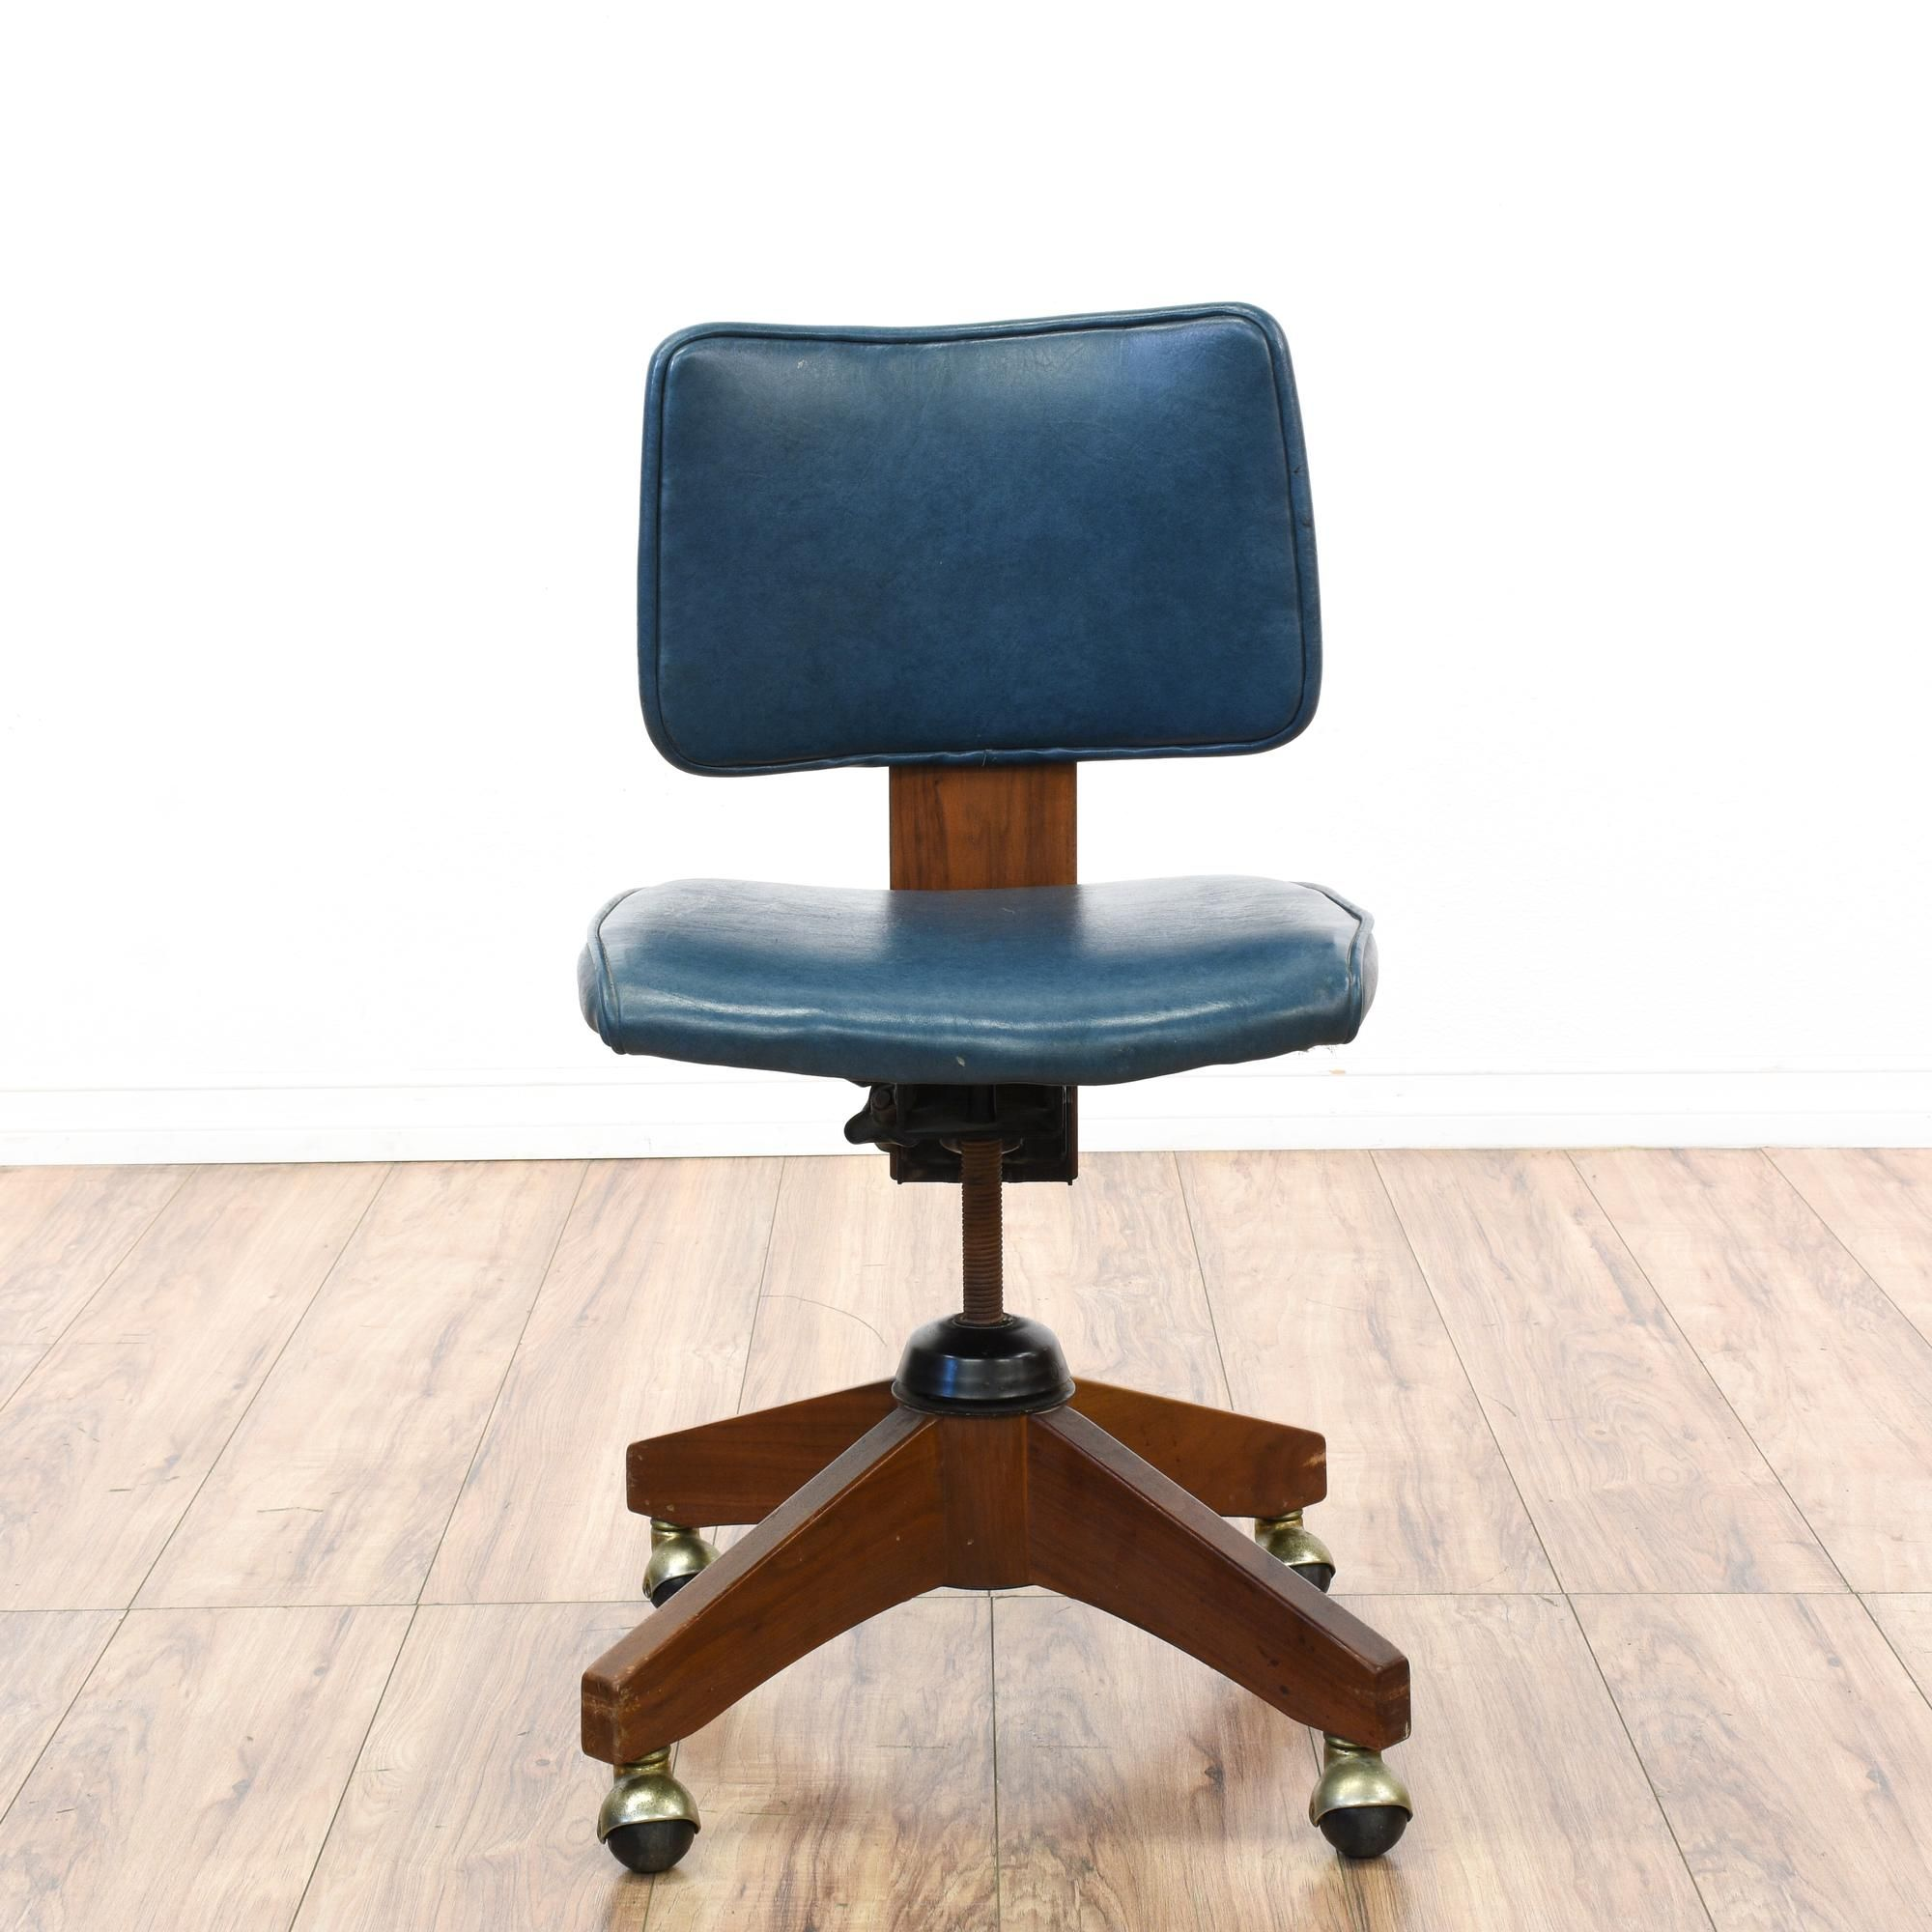 This Retro Office Chair Is Featured In A Solid Wood With A Glossy Dark Cherry Finish This Mid Century Modern Desk Chair Has A Rolling Wheel Modern Desk Chair Retro